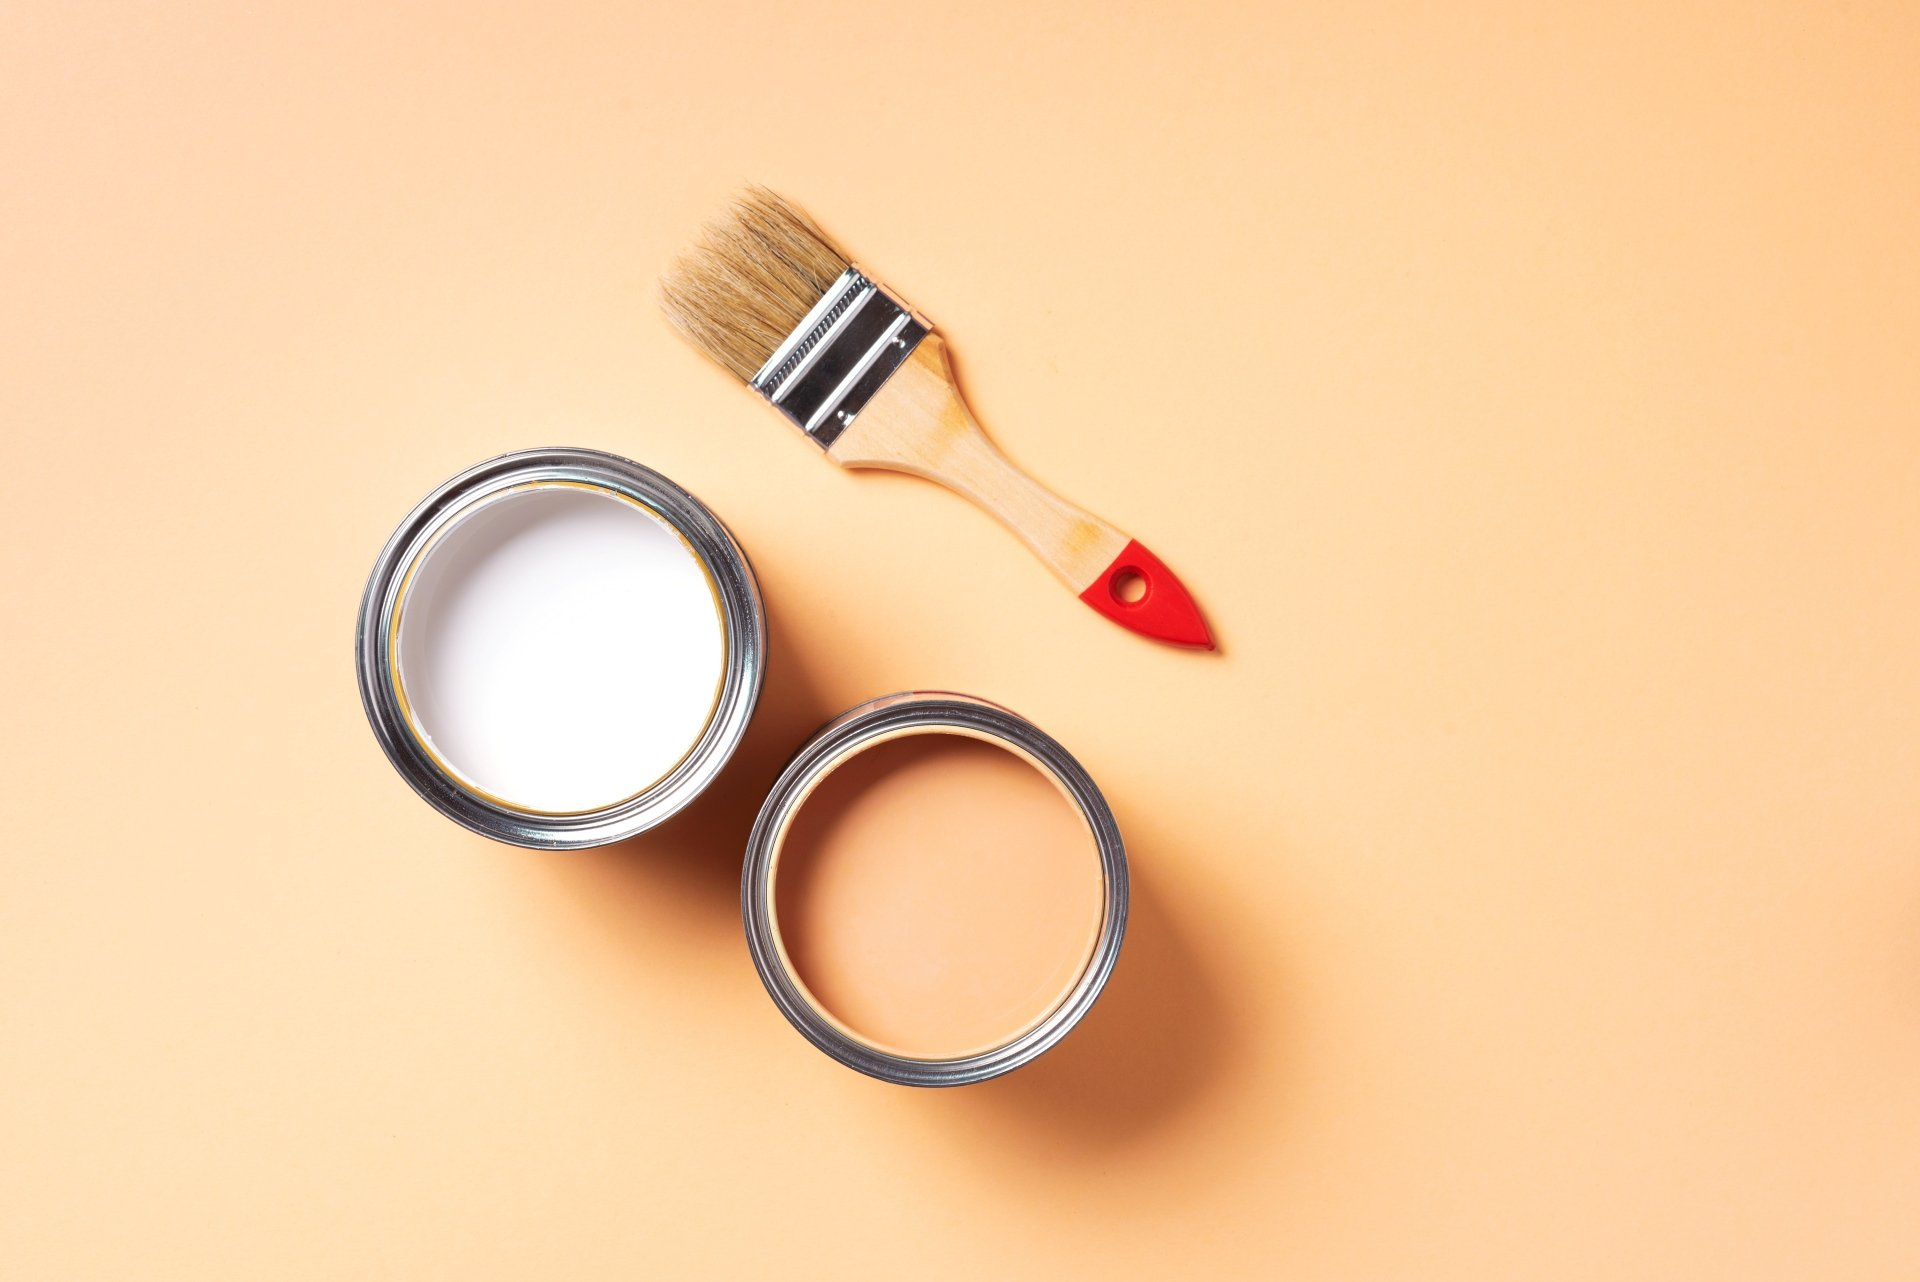 Paint brush and open paint can with on pastel background.